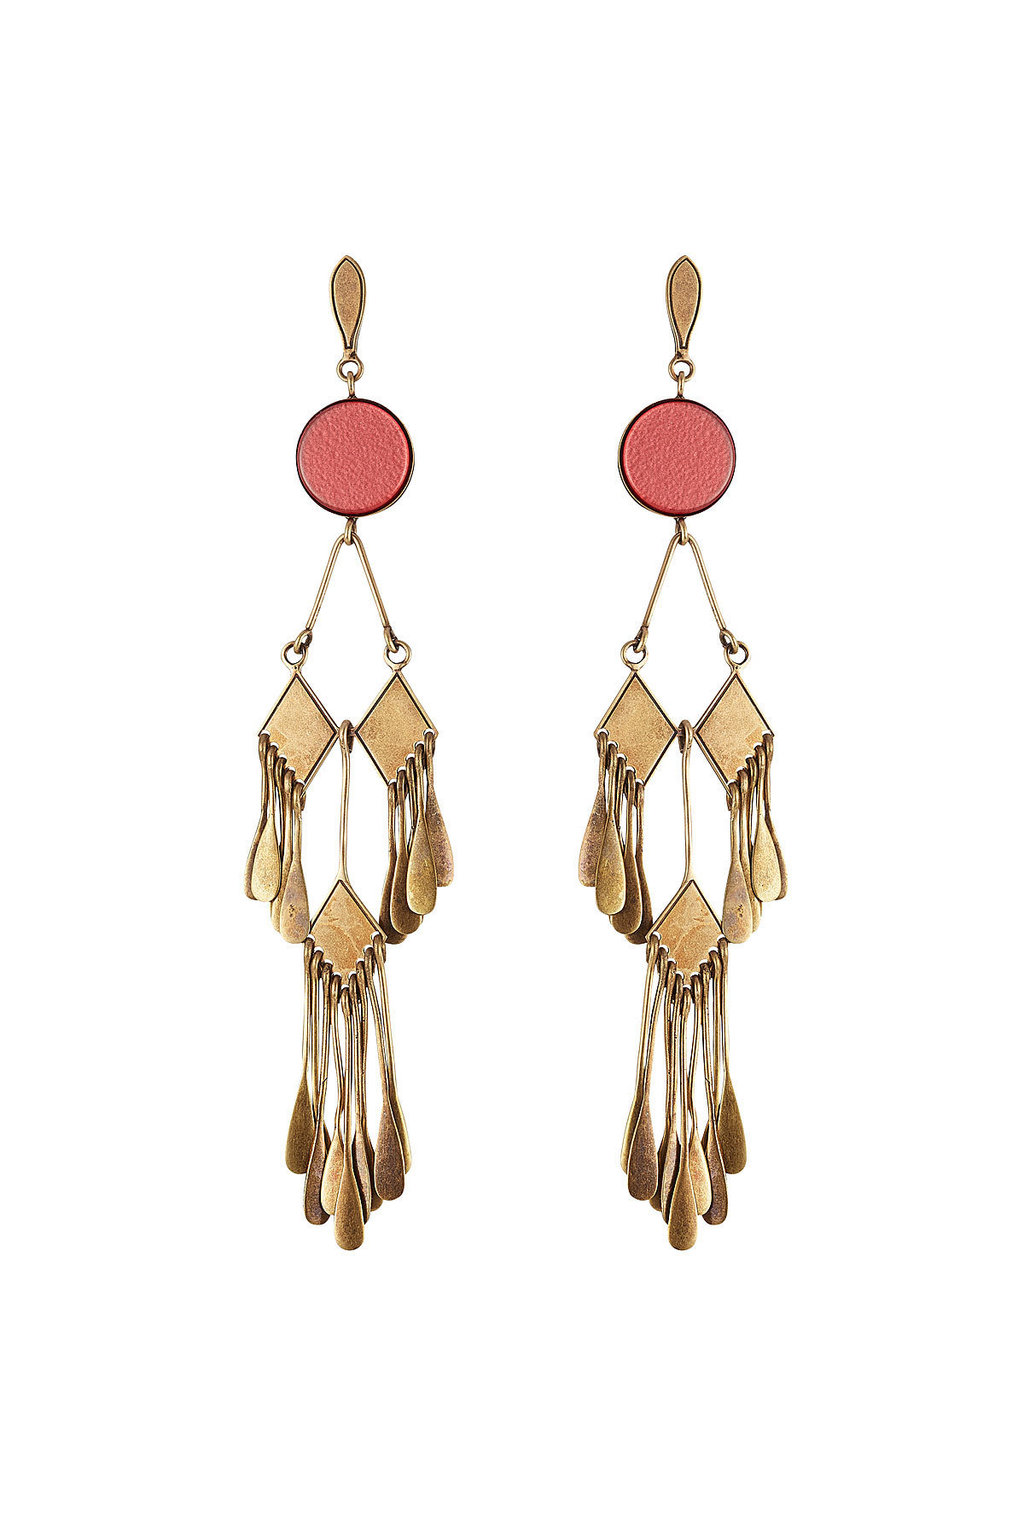 Chandelier Earrings - secondary colour: pink; predominant colour: gold; occasions: evening, occasion; style: drop; length: long; size: standard; material: chain/metal; fastening: pierced; finish: metallic; embellishment: chain/metal; wardrobe: event; season: s/s 2017